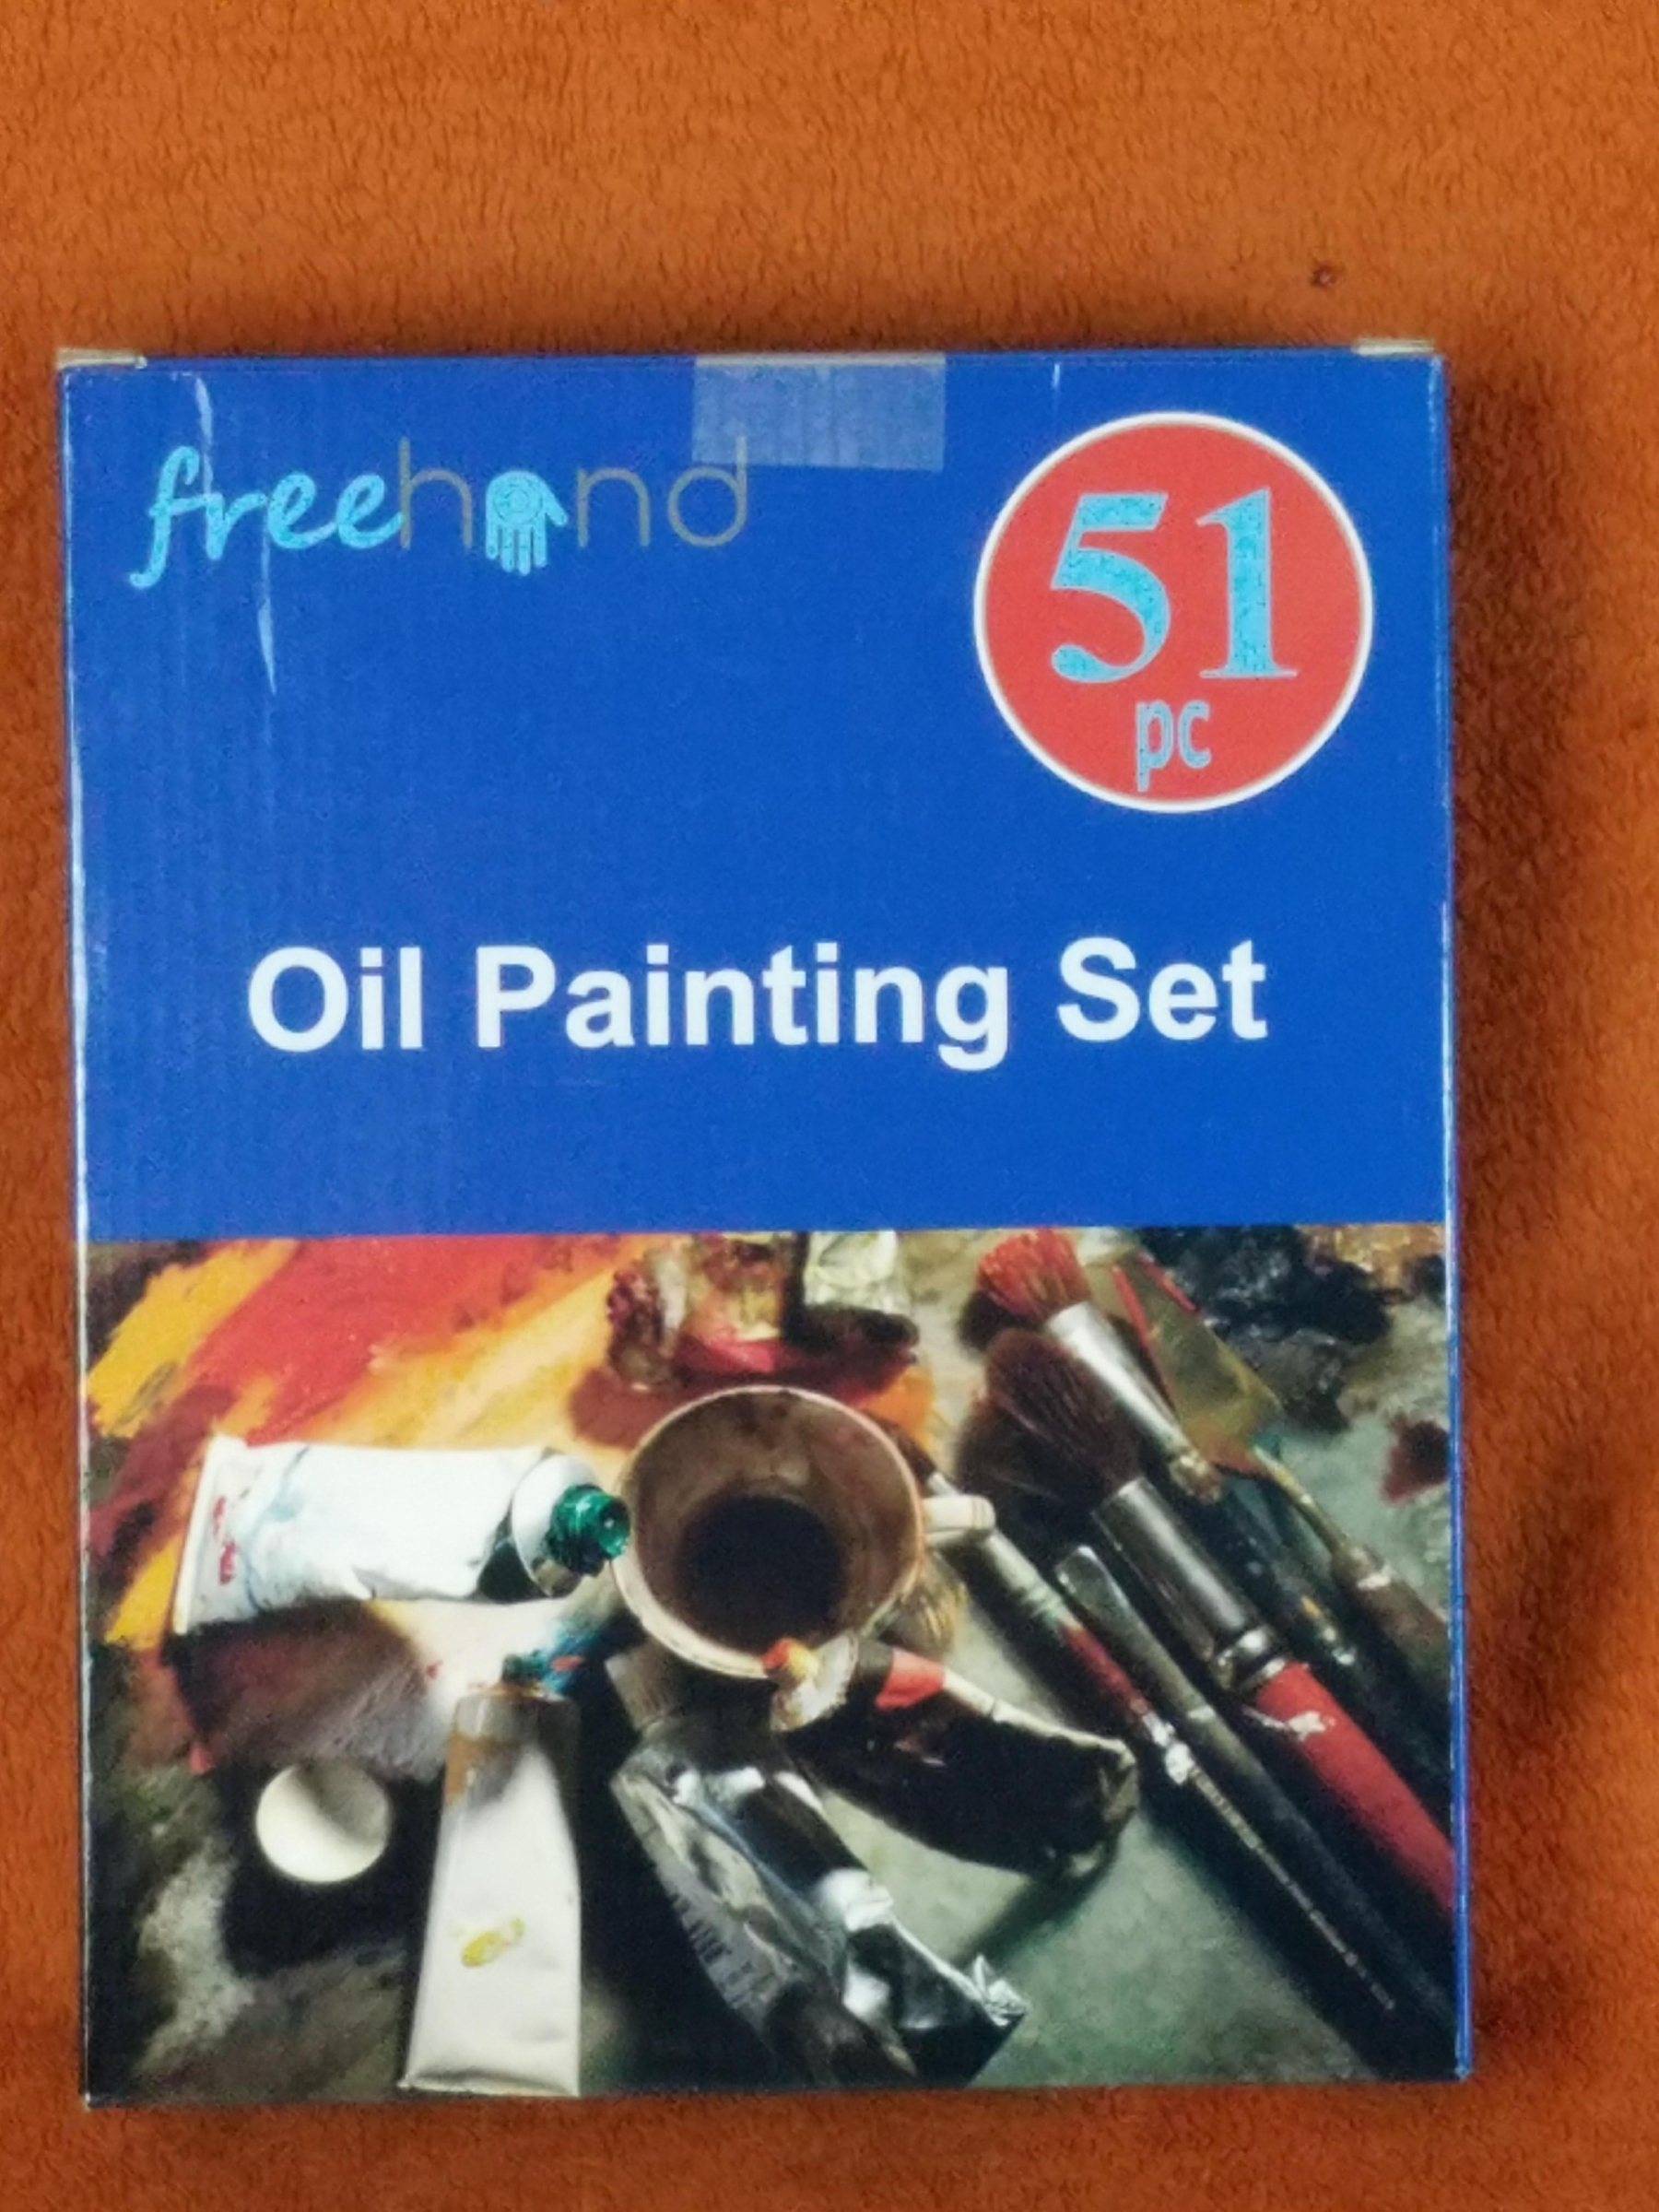 Ready to use straight out of the box!  Helps bring out your inner artist, great for adults & kids alike, very high quality, professional painting tools and premium paints!